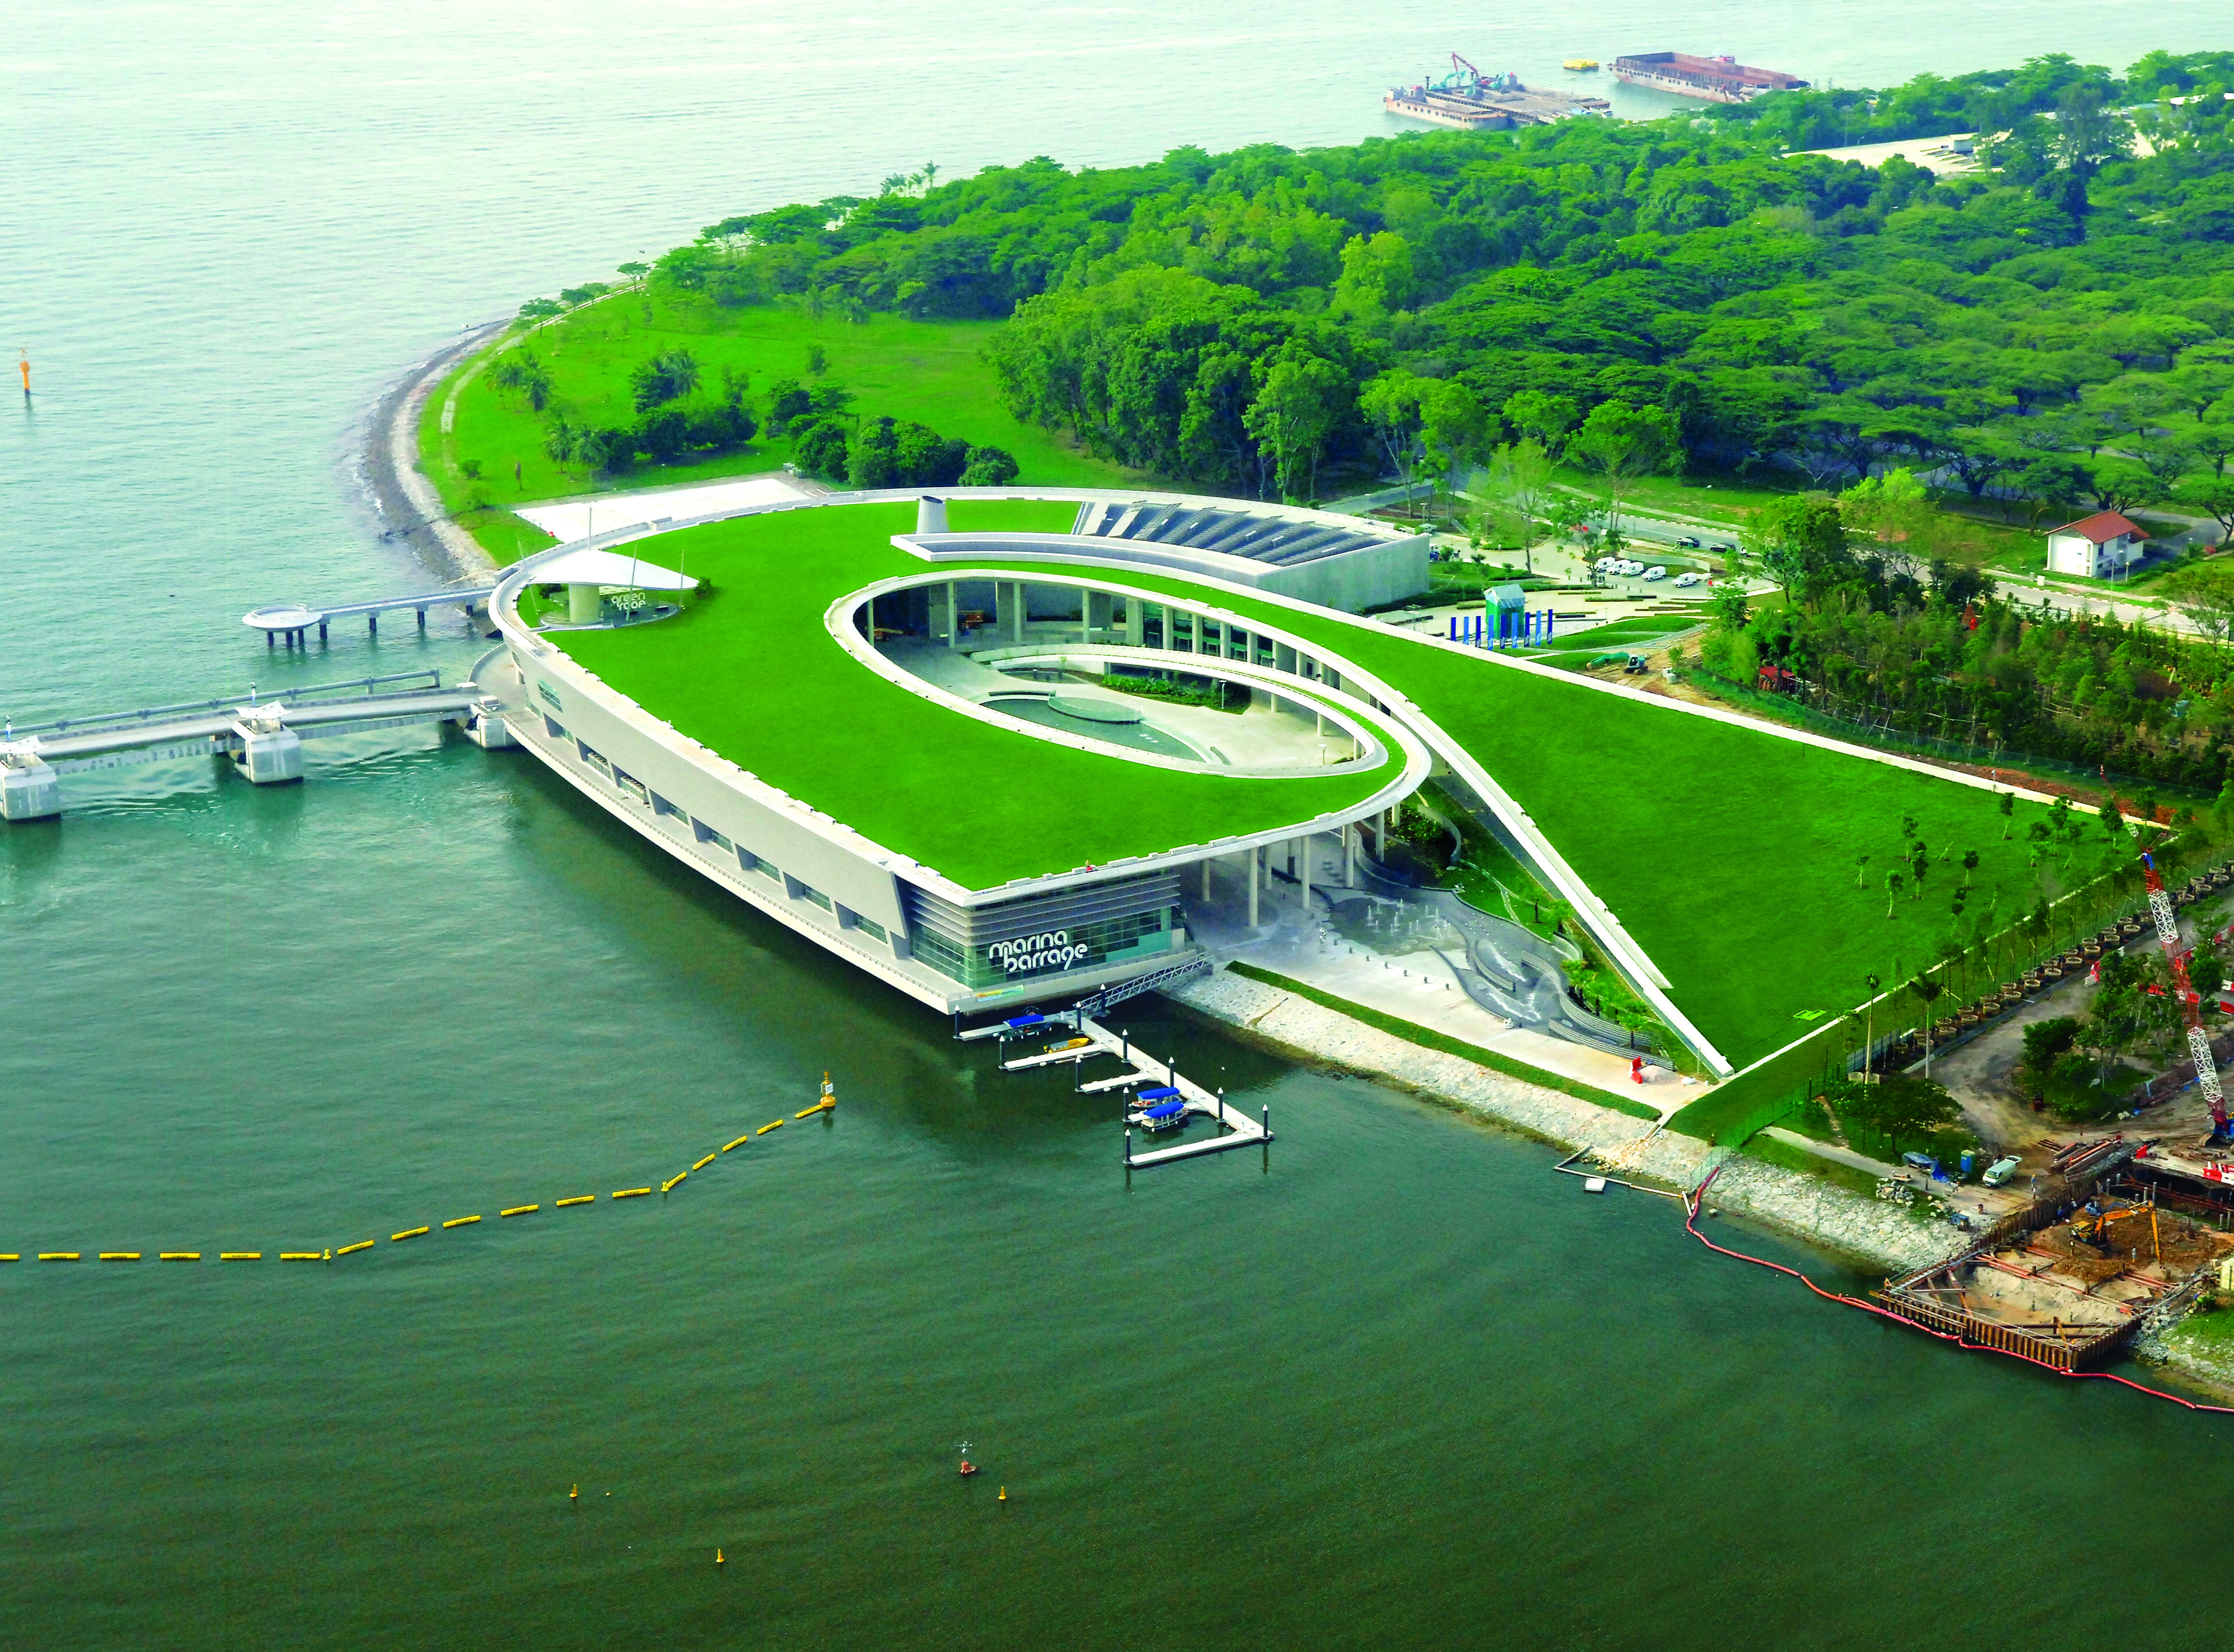 Singapore's Marina Barrage reservoir